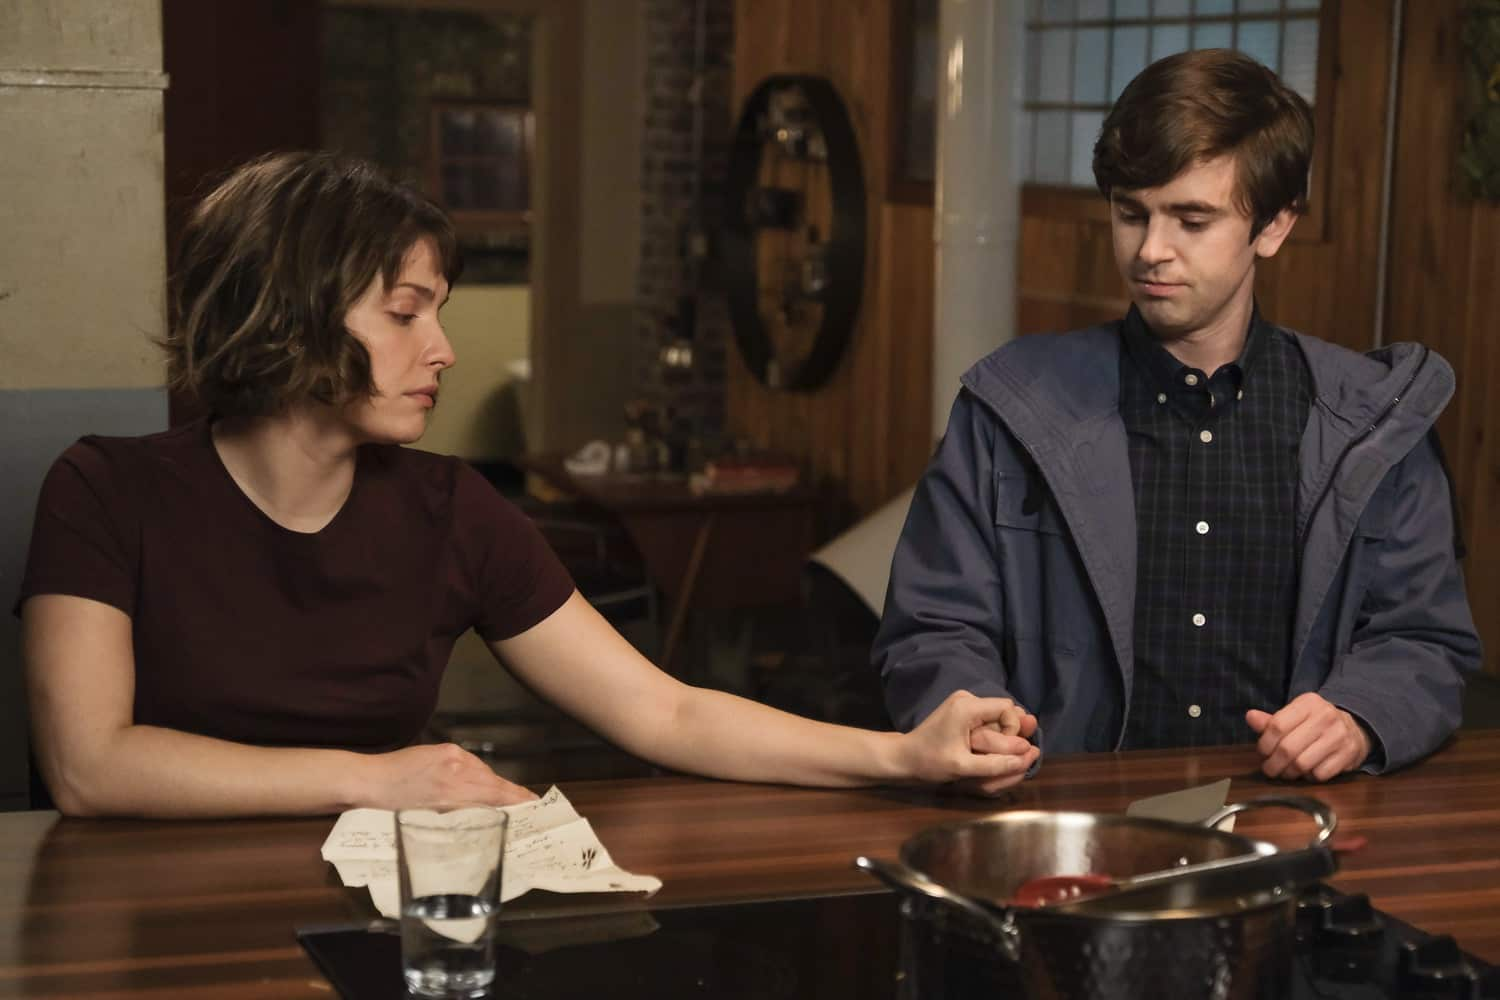 """THE GOOD DOCTOR Season 4 Episode 12 - """"Teeny Blue Eyes"""" – When a renowned surgeon comes to St. Bonaventure for treatment, the team's enthusiasm is quickly overshadowed by the doctor's behavior. After studying his case, Dr. Shaun Murphy sees a pattern he recognizes. Meanwhile, Shaun and Lea are forced to make a life-changing decision that will alter the course of their relationship on an all-new episode of """"The Good Doctor,"""" MONDAY, MARCH 22 (10:00-11:00 p.m. EDT), on ABC. (ABC/Jeff Weddell) PAIGE SPARA, FREDDIE HIGHMORE"""